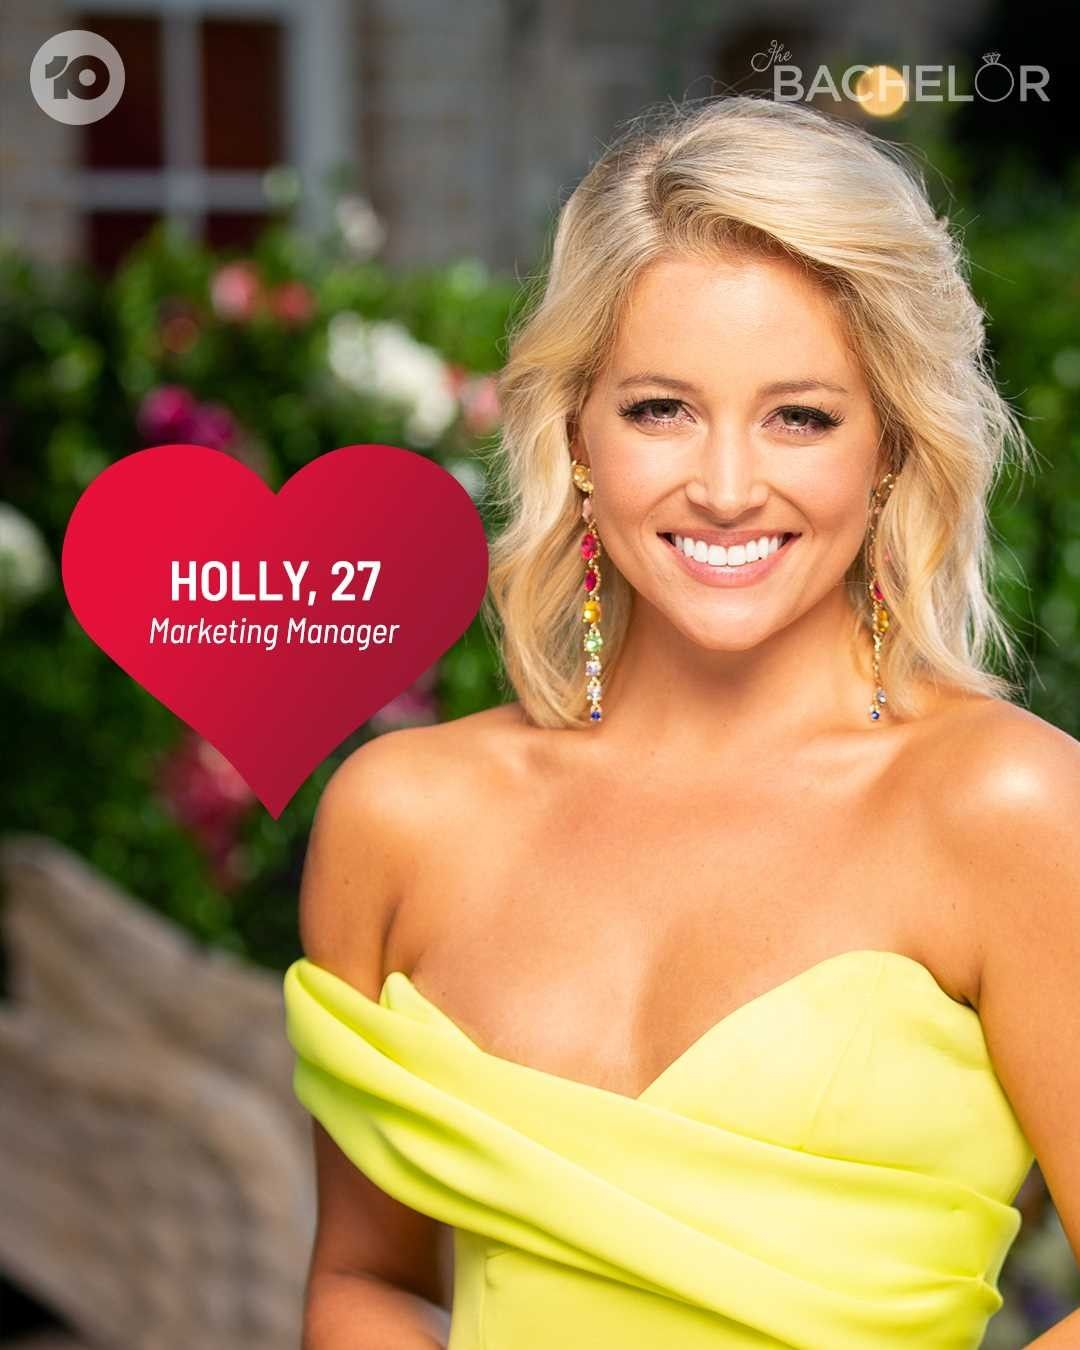 Bachelor Australia - Season 9 - Jimmy Nicholson - Holly Kingston - Paddle Boat Blonde 1-on-1 date - *Sleuthing Spoilers* - Page 2 21379610